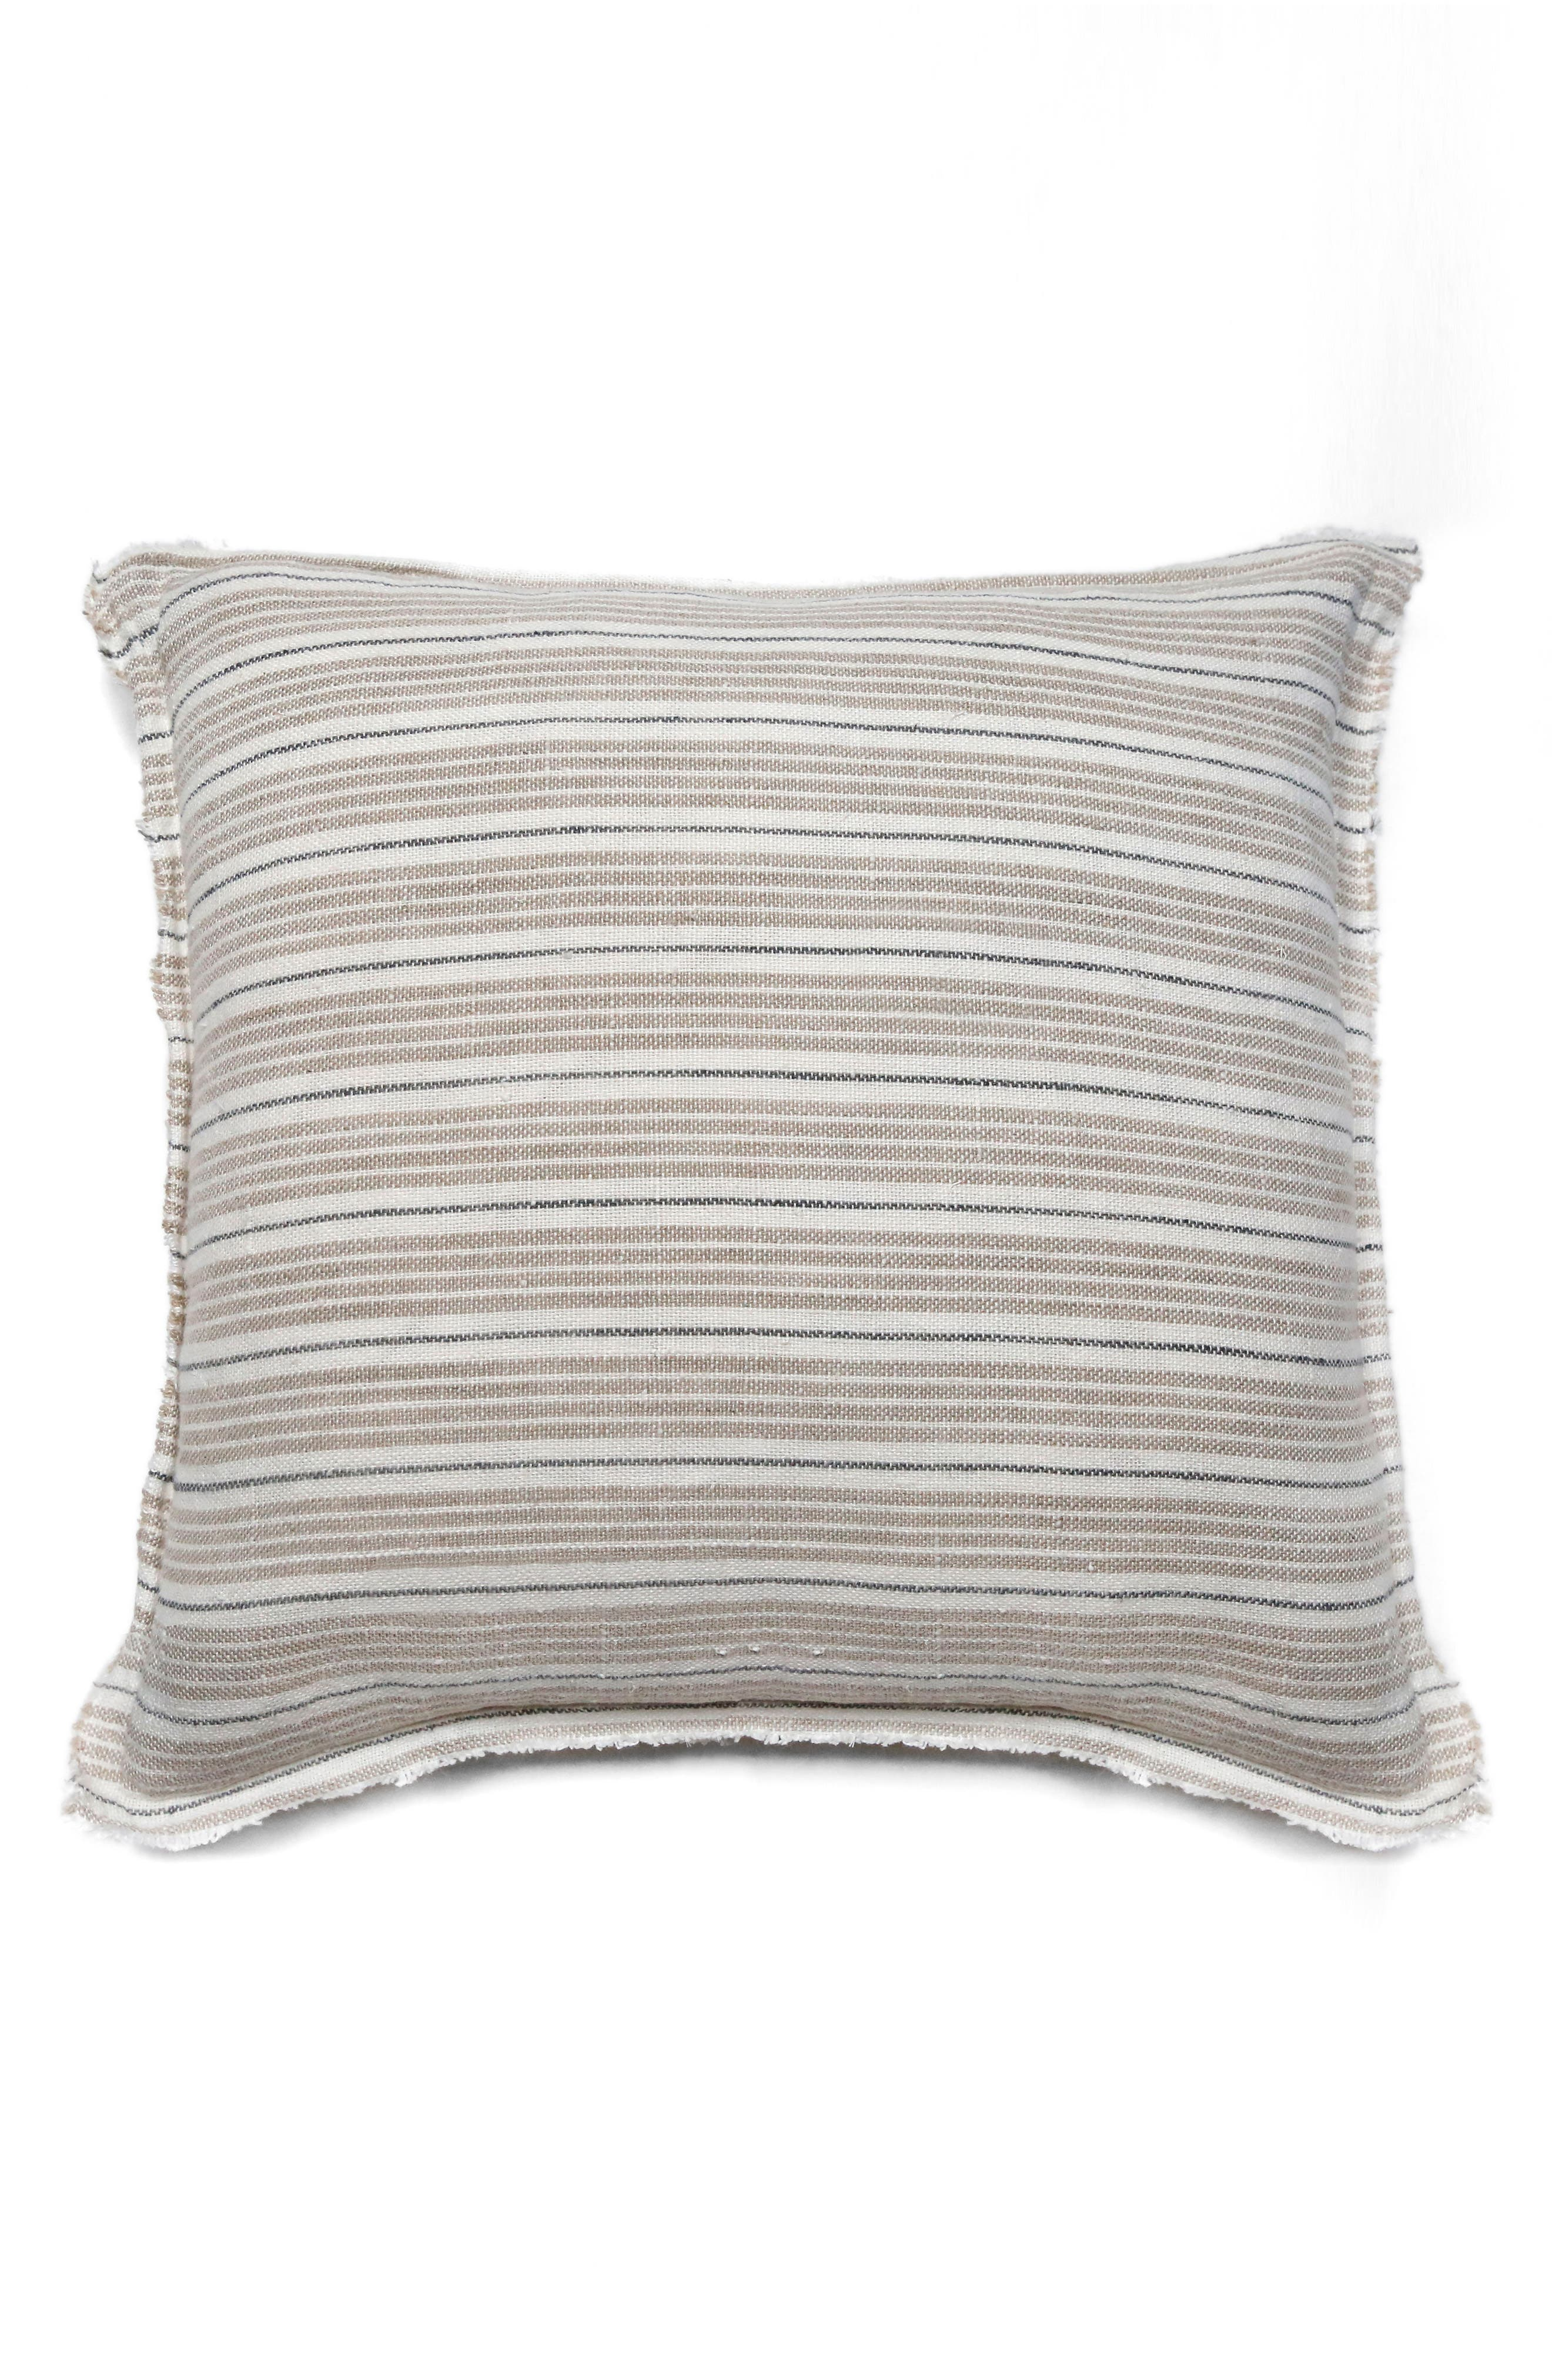 Alternate Image 1 Selected - Pom Pom at Home Newport Accent Pillow